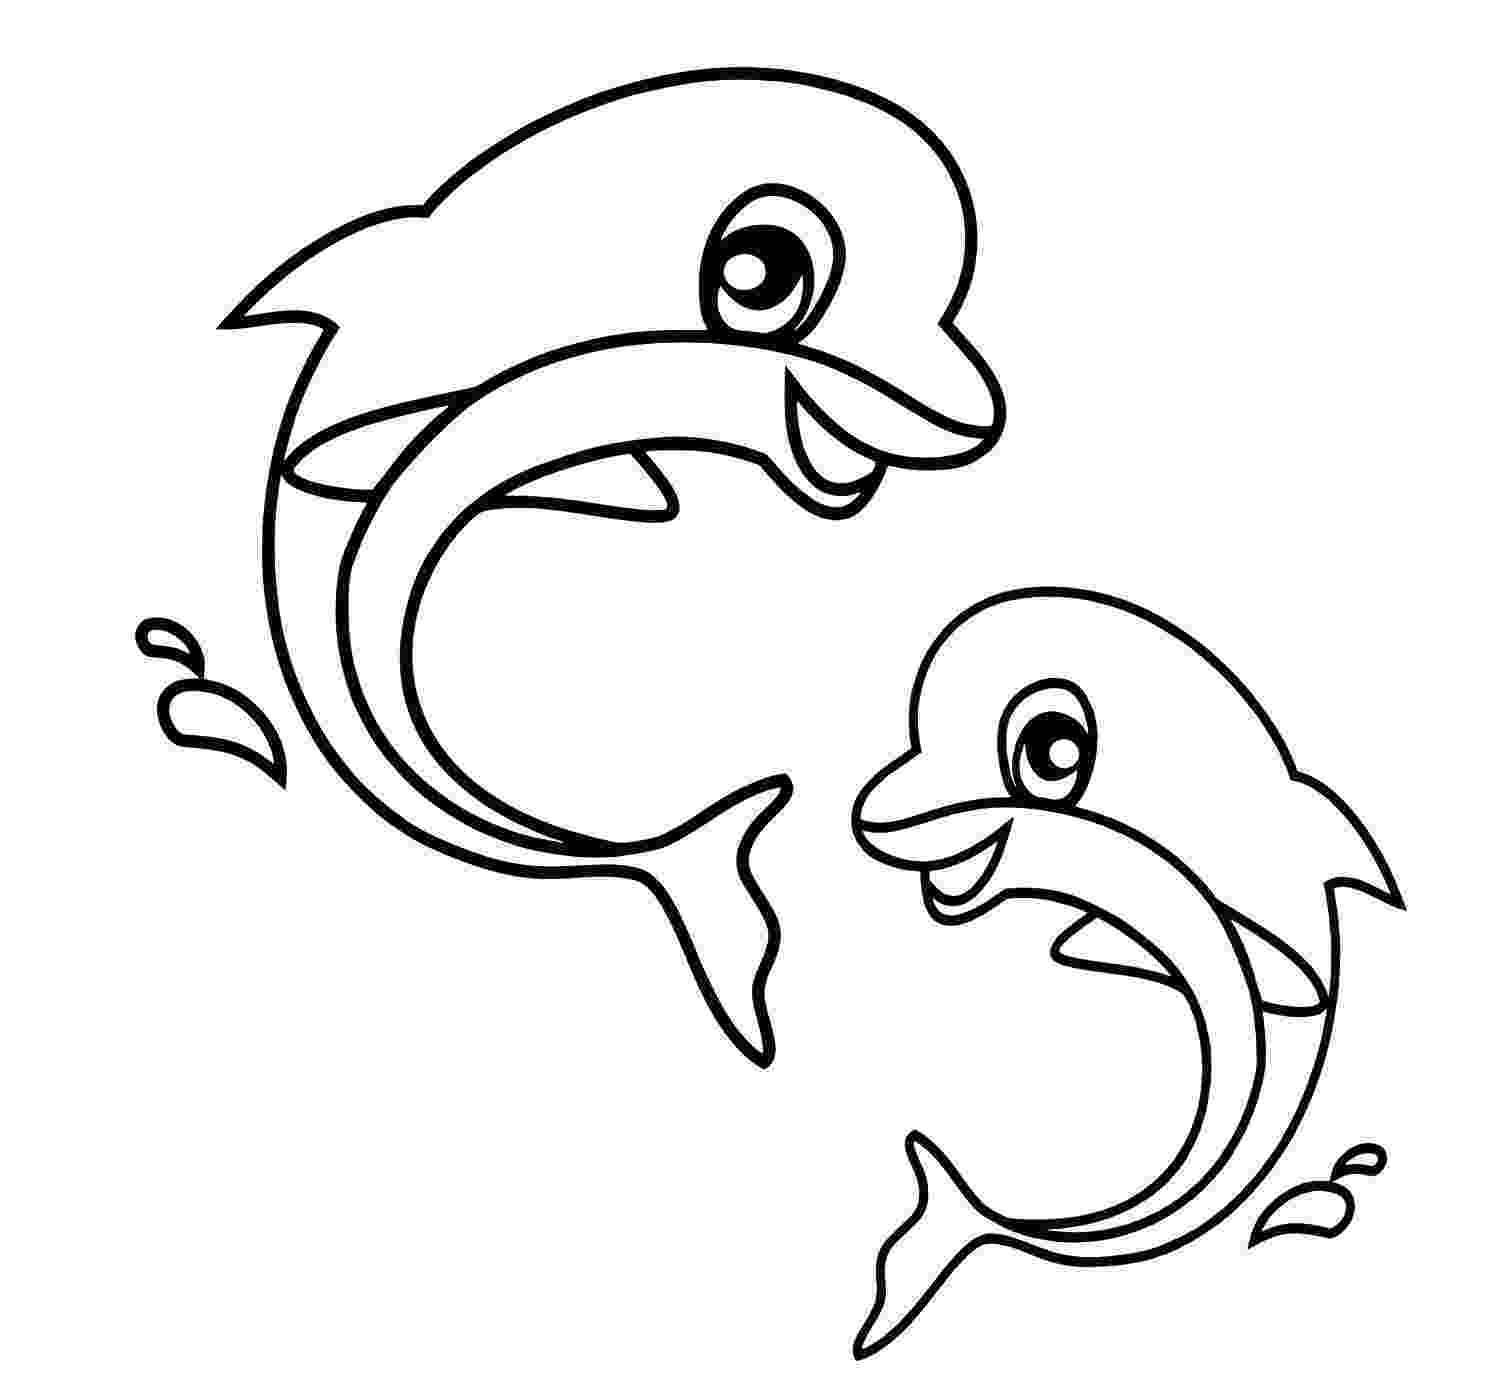 animal coloring pages for kids free printable ocean coloring pages for kids coloring pages for kids coloring animal